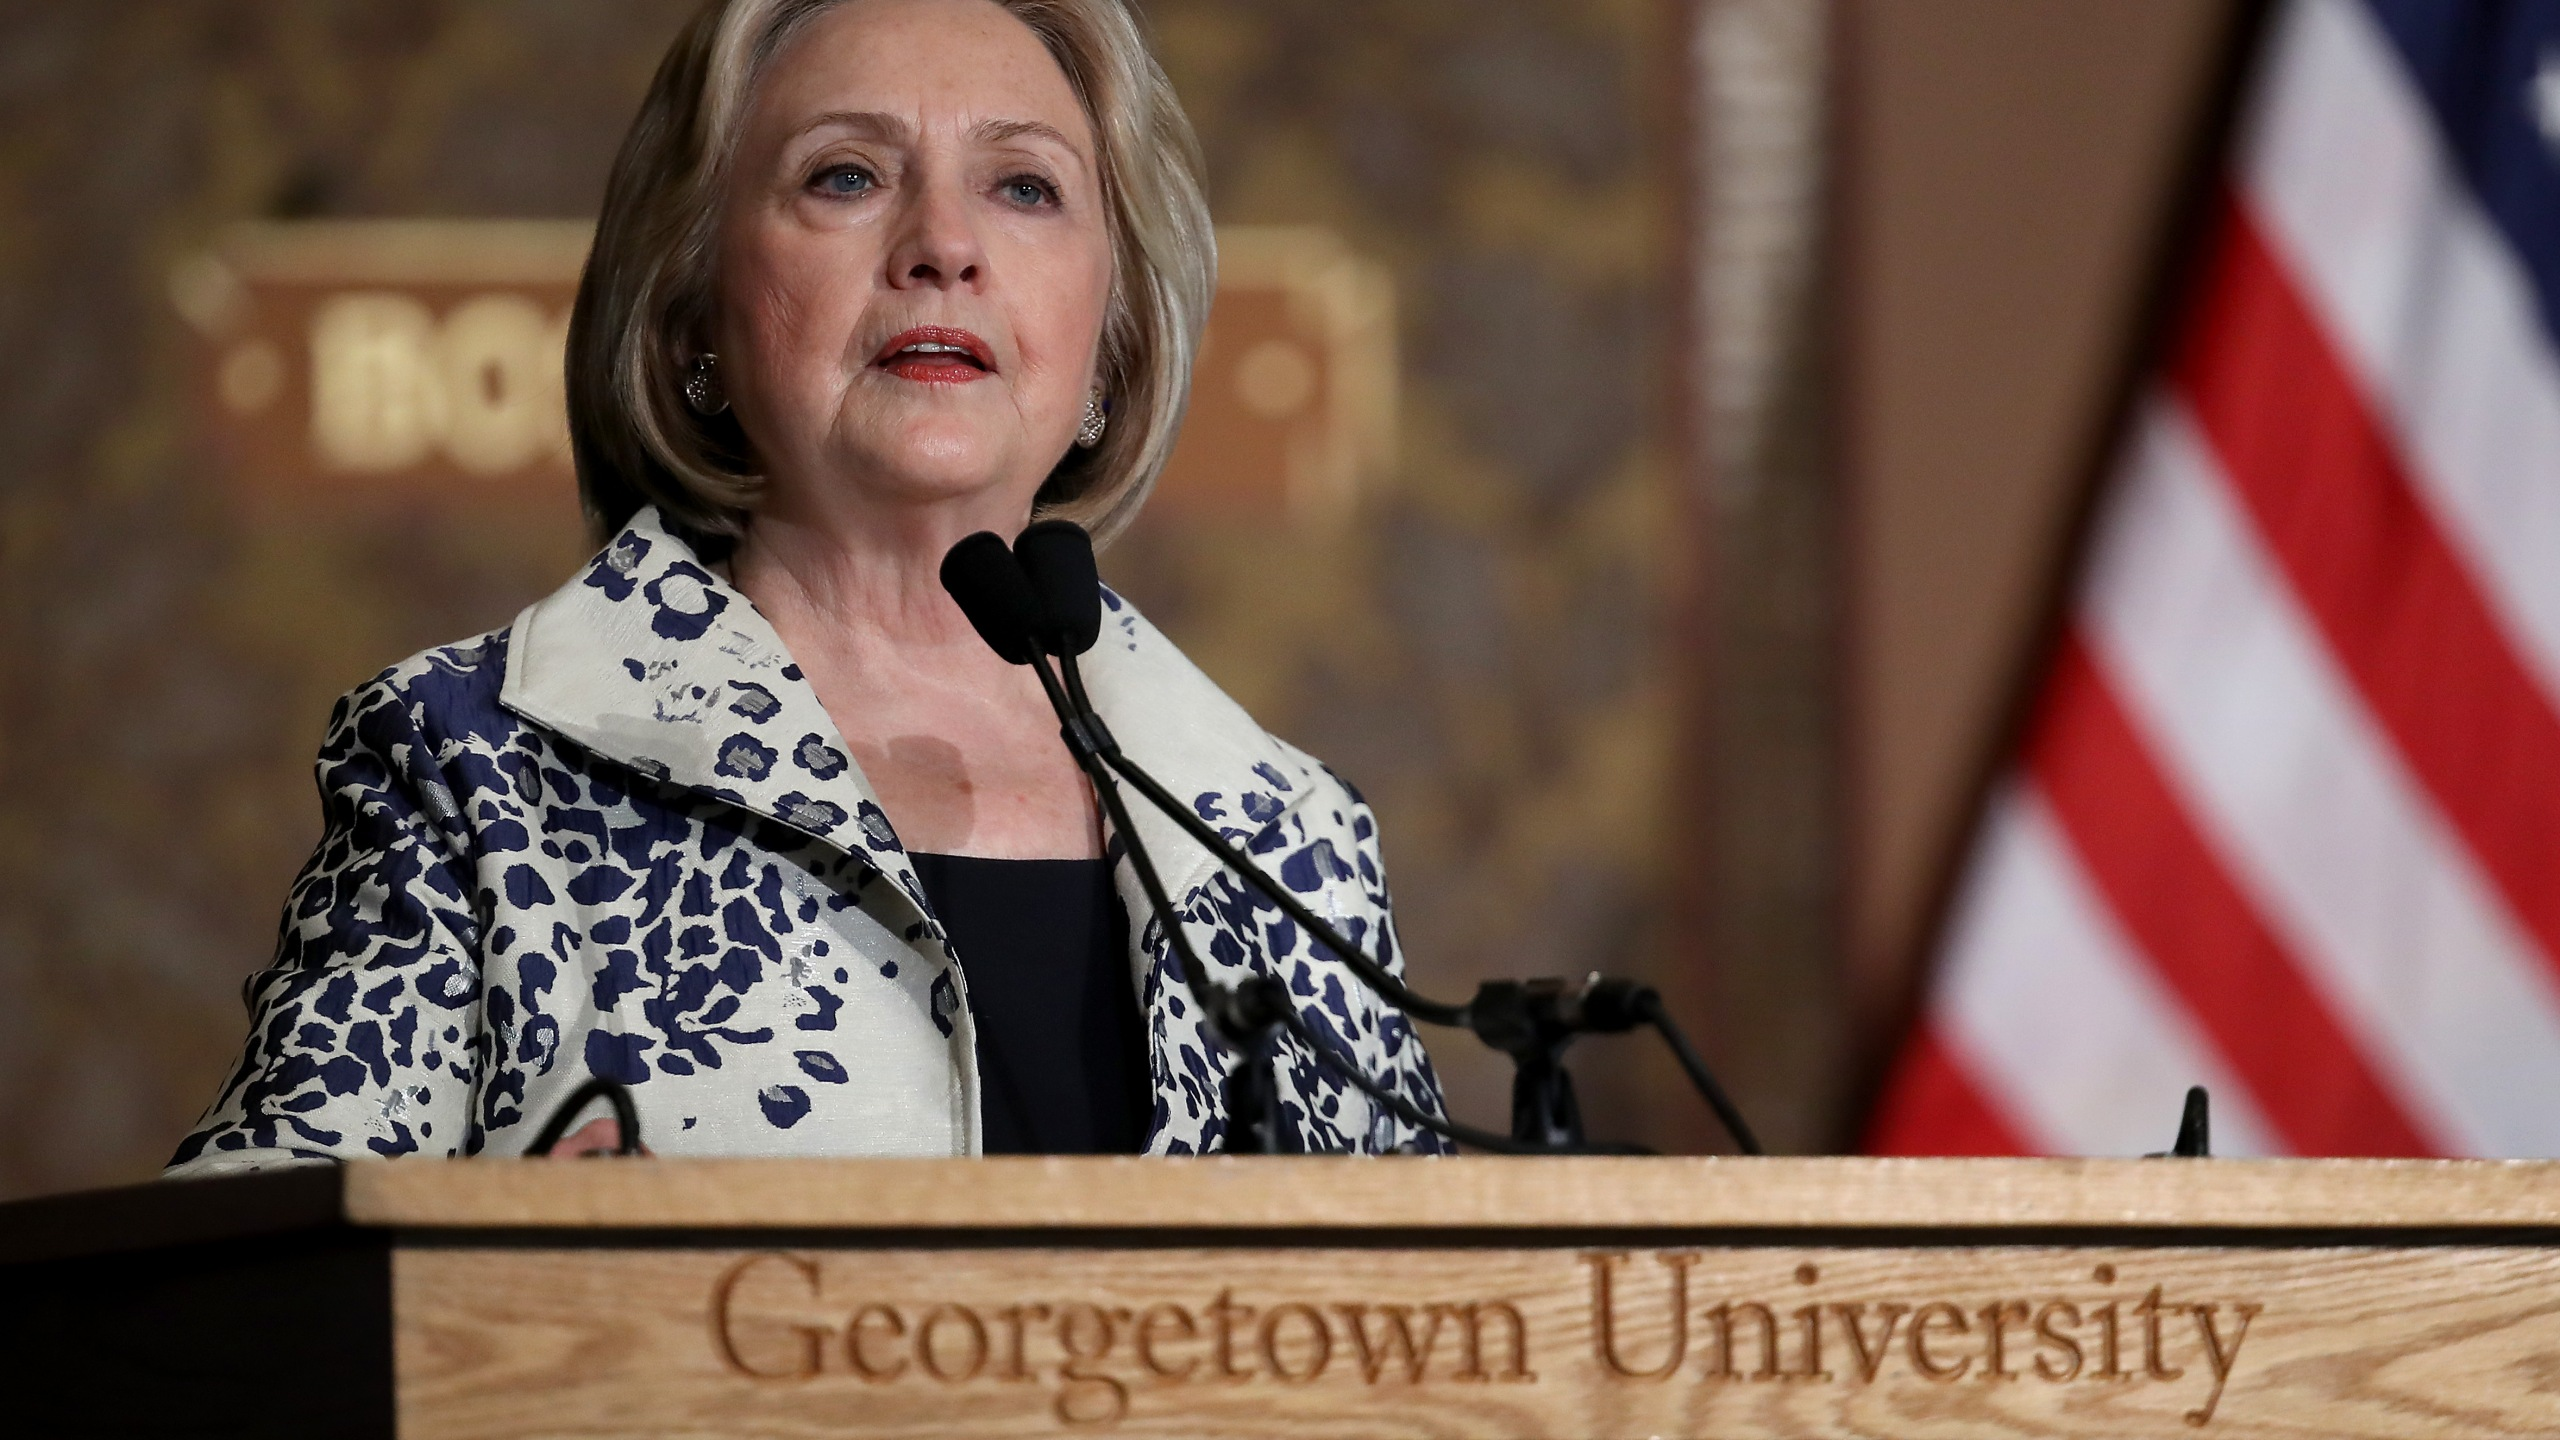 Former U.S. Secretary of State Hillary Clinton speaks at Georgetown University Sept. 27, 2019, in Washington, D.C. (Credit: Win McNamee/Getty Images)